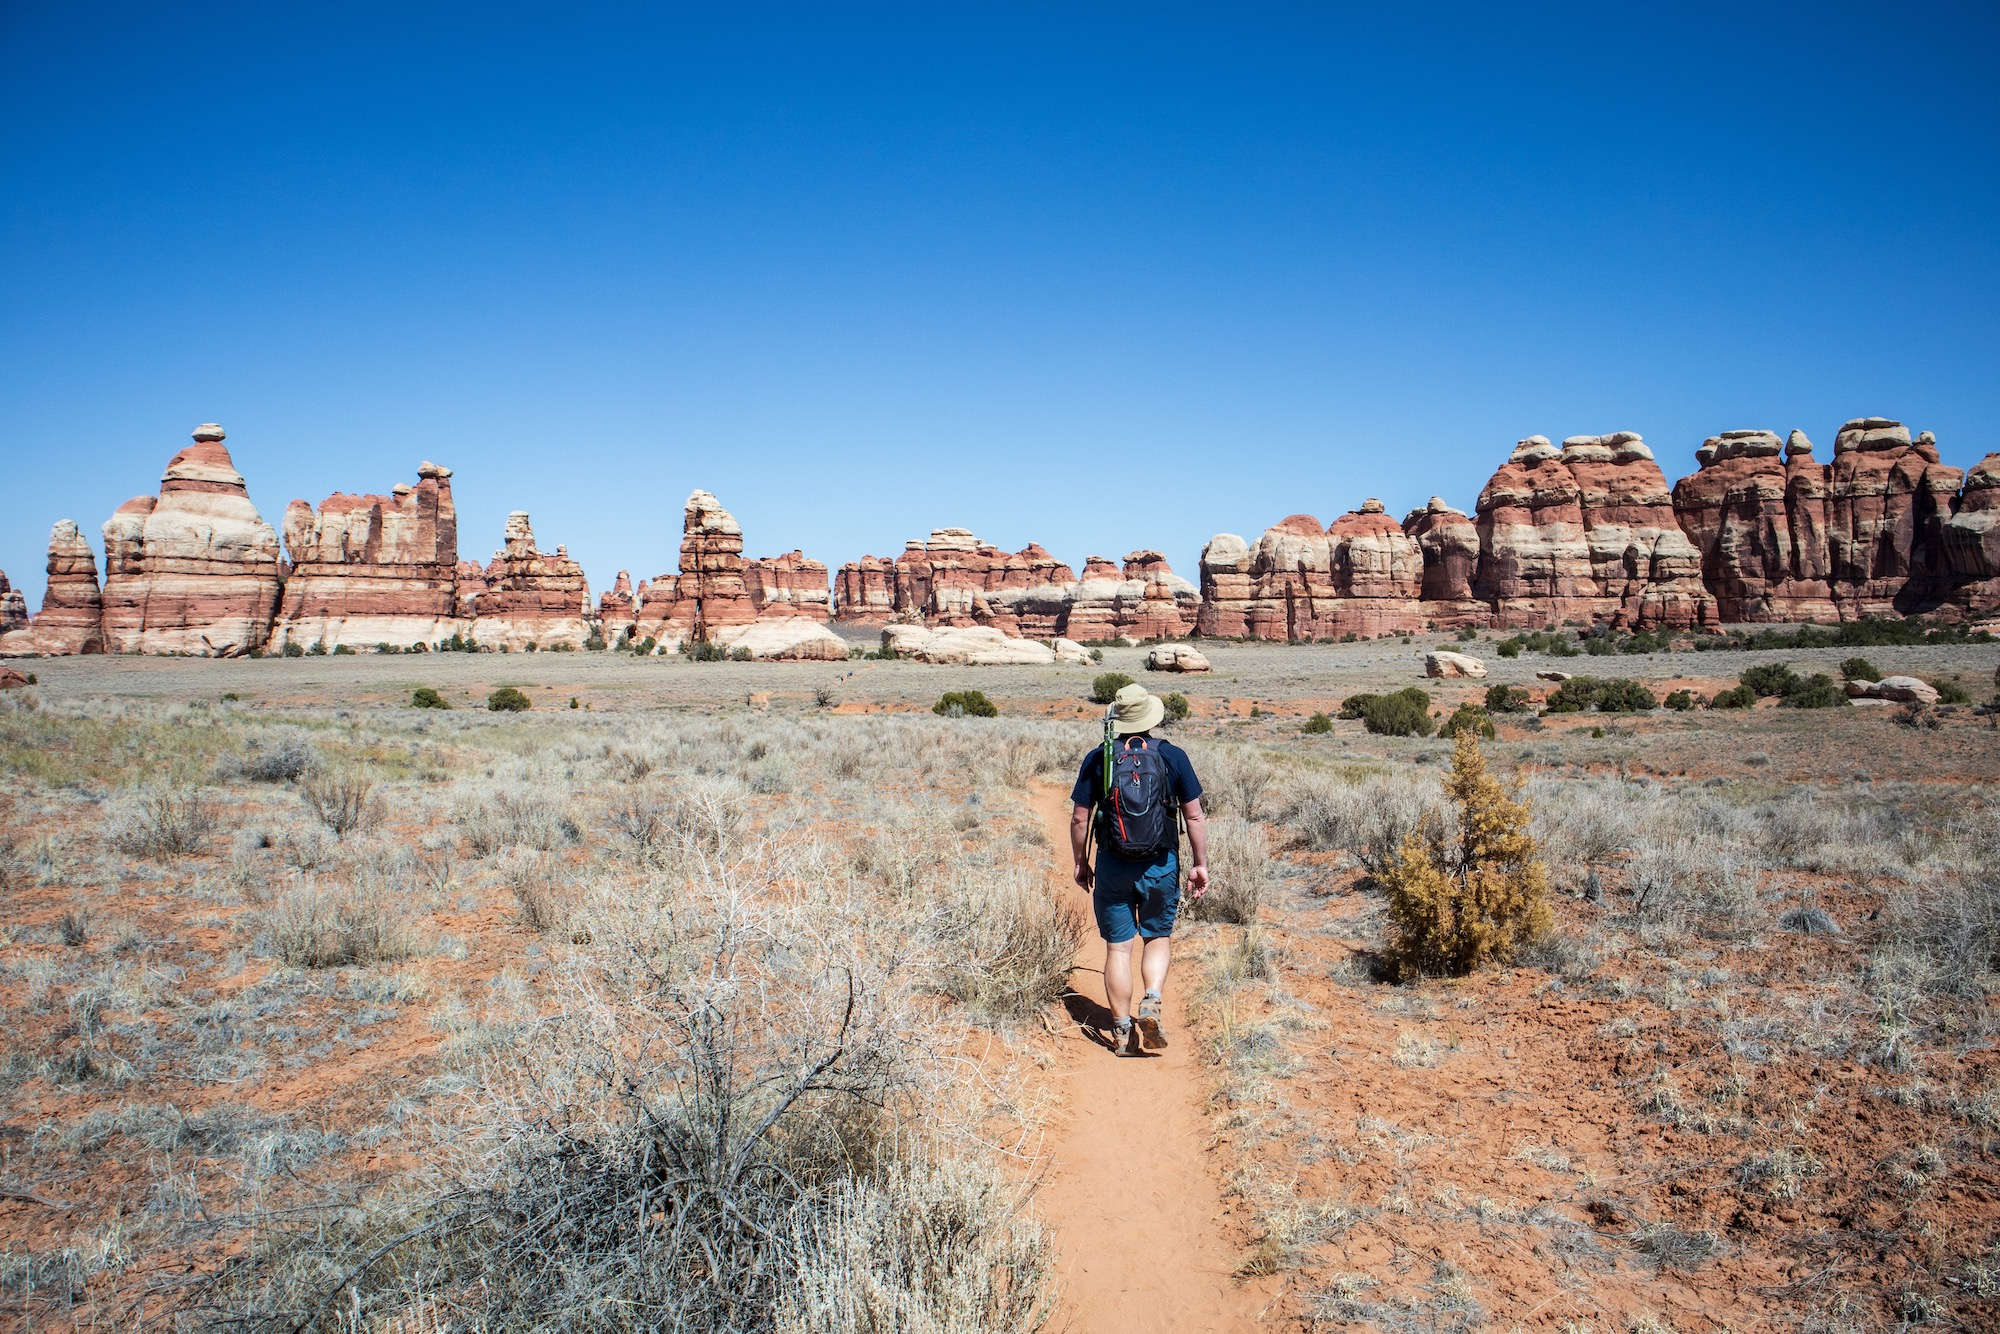 Chesler Park is ringed by the red and white striped towers that give the Needles district its name.